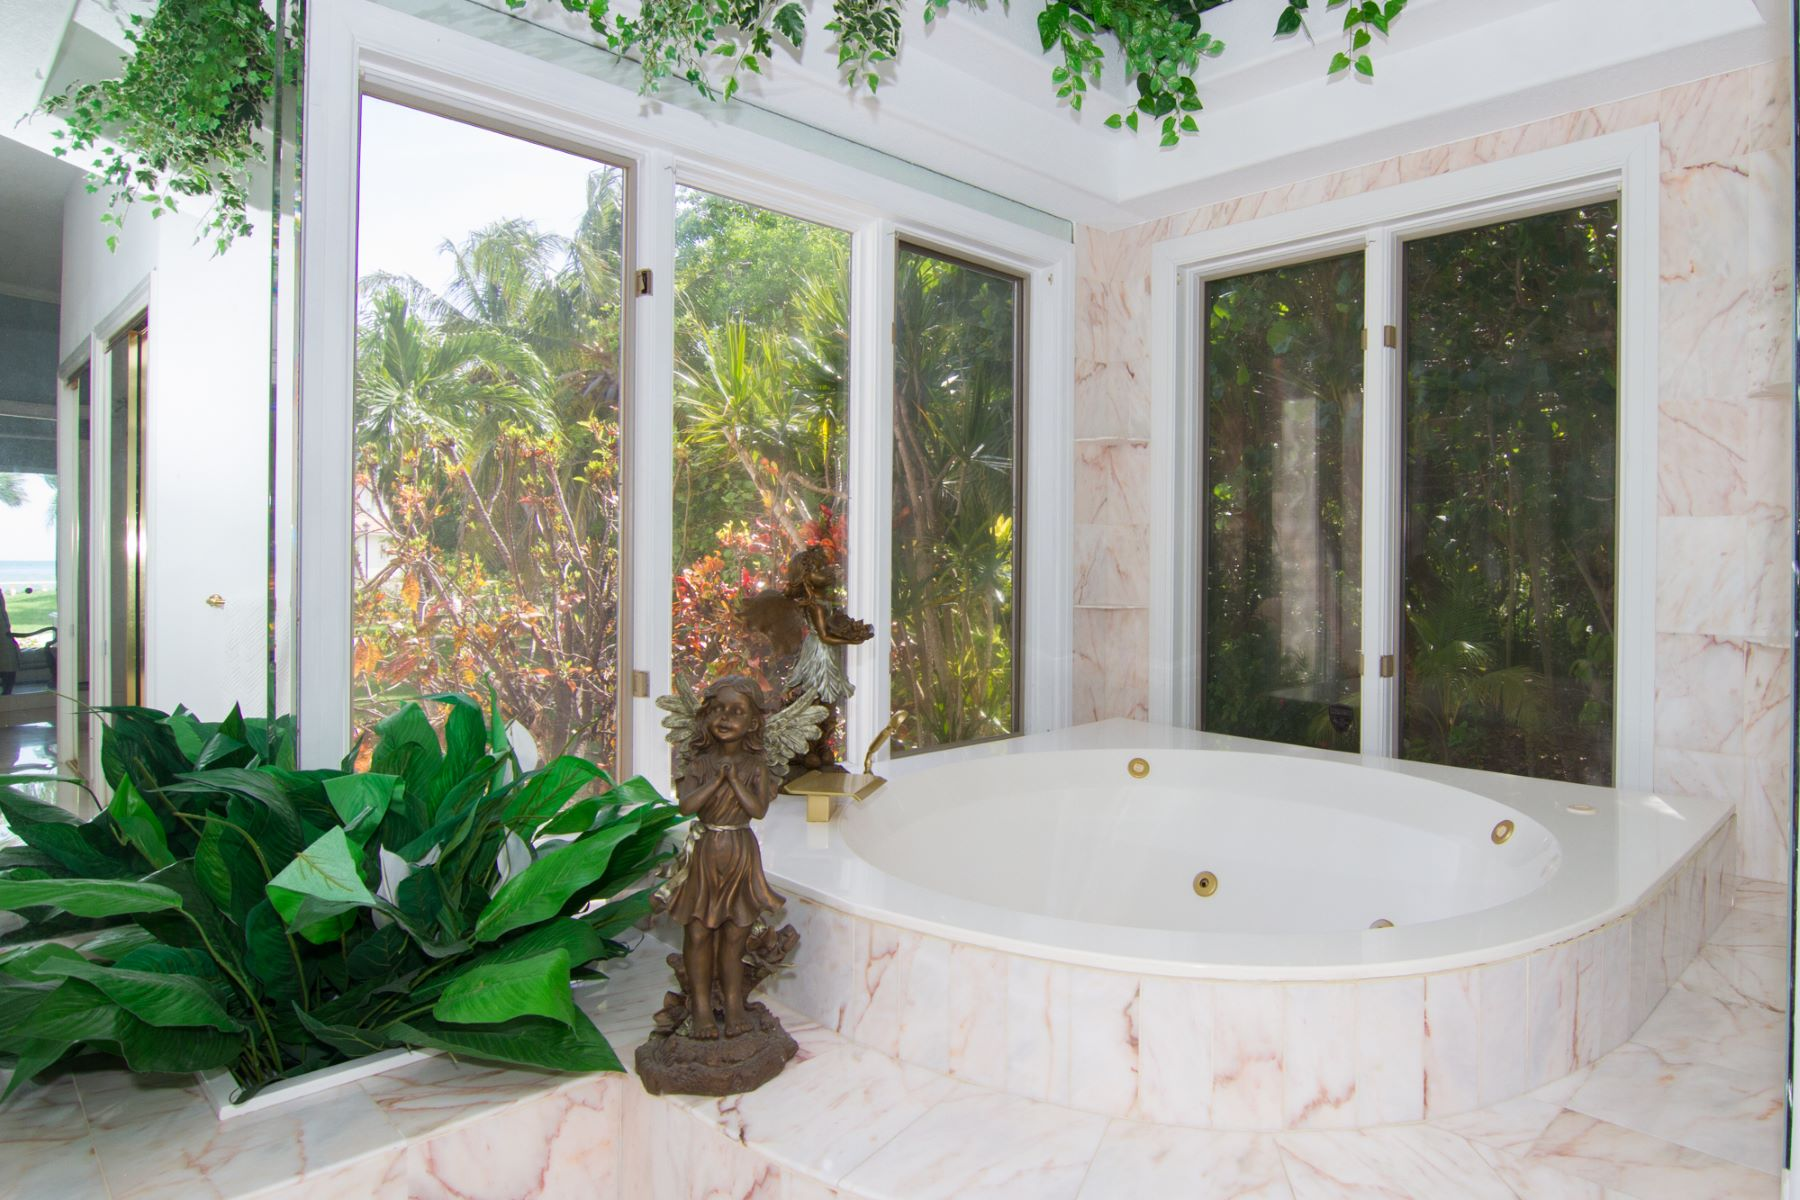 Additional photo for property listing at Luxurious ocean front villa Other Cayman Islands,  Cayman Islands